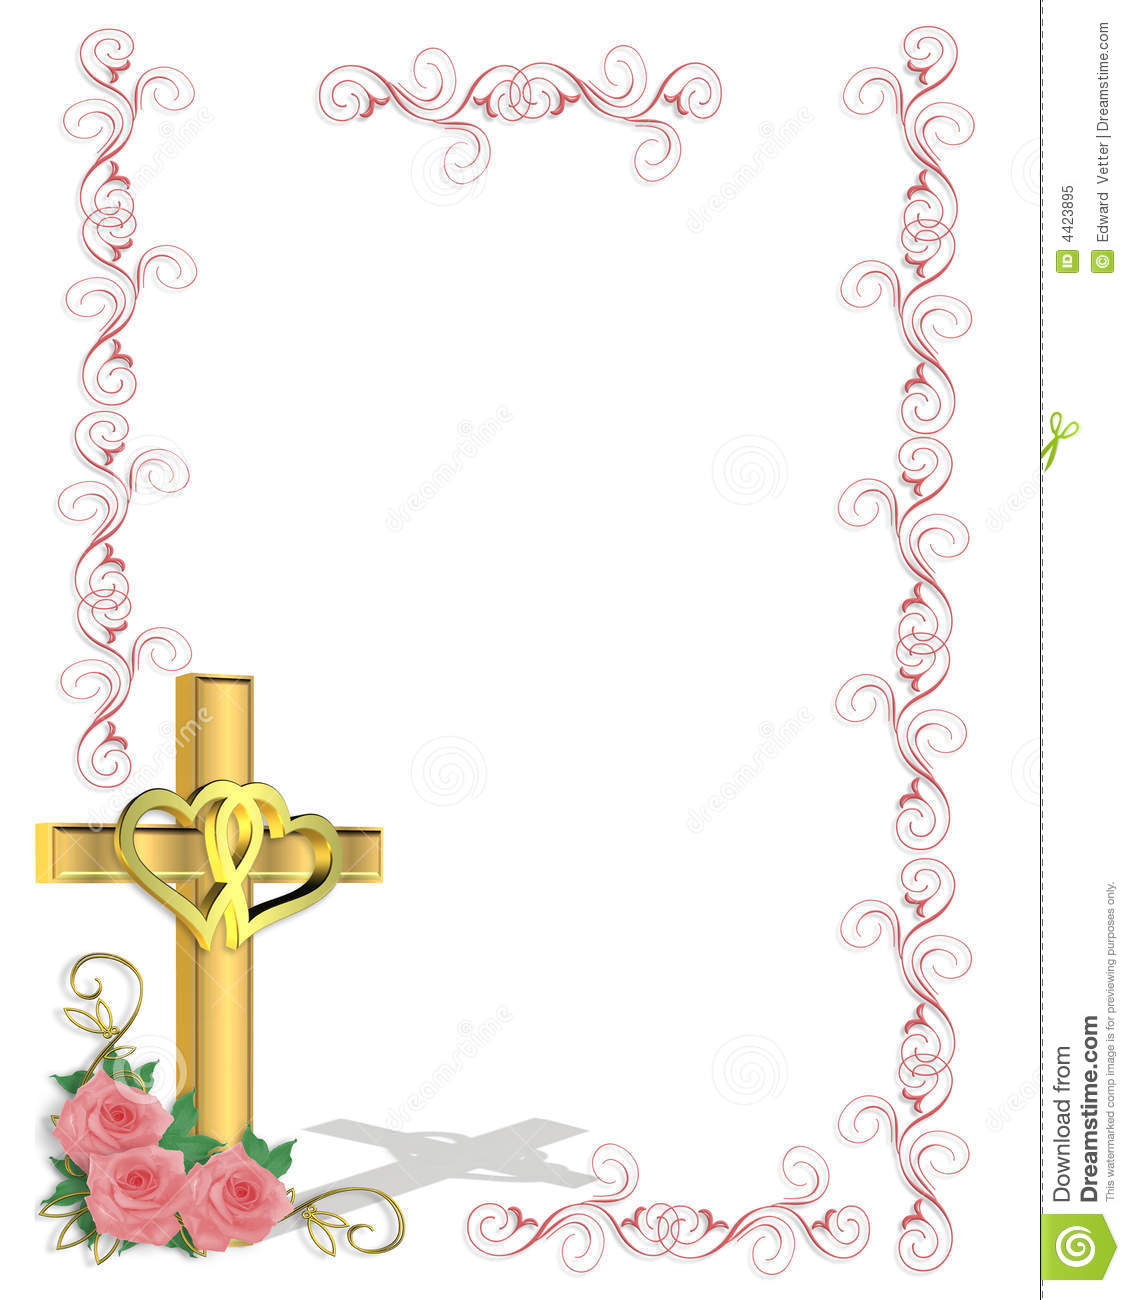 free christian clip art borders u2013 clipart free download